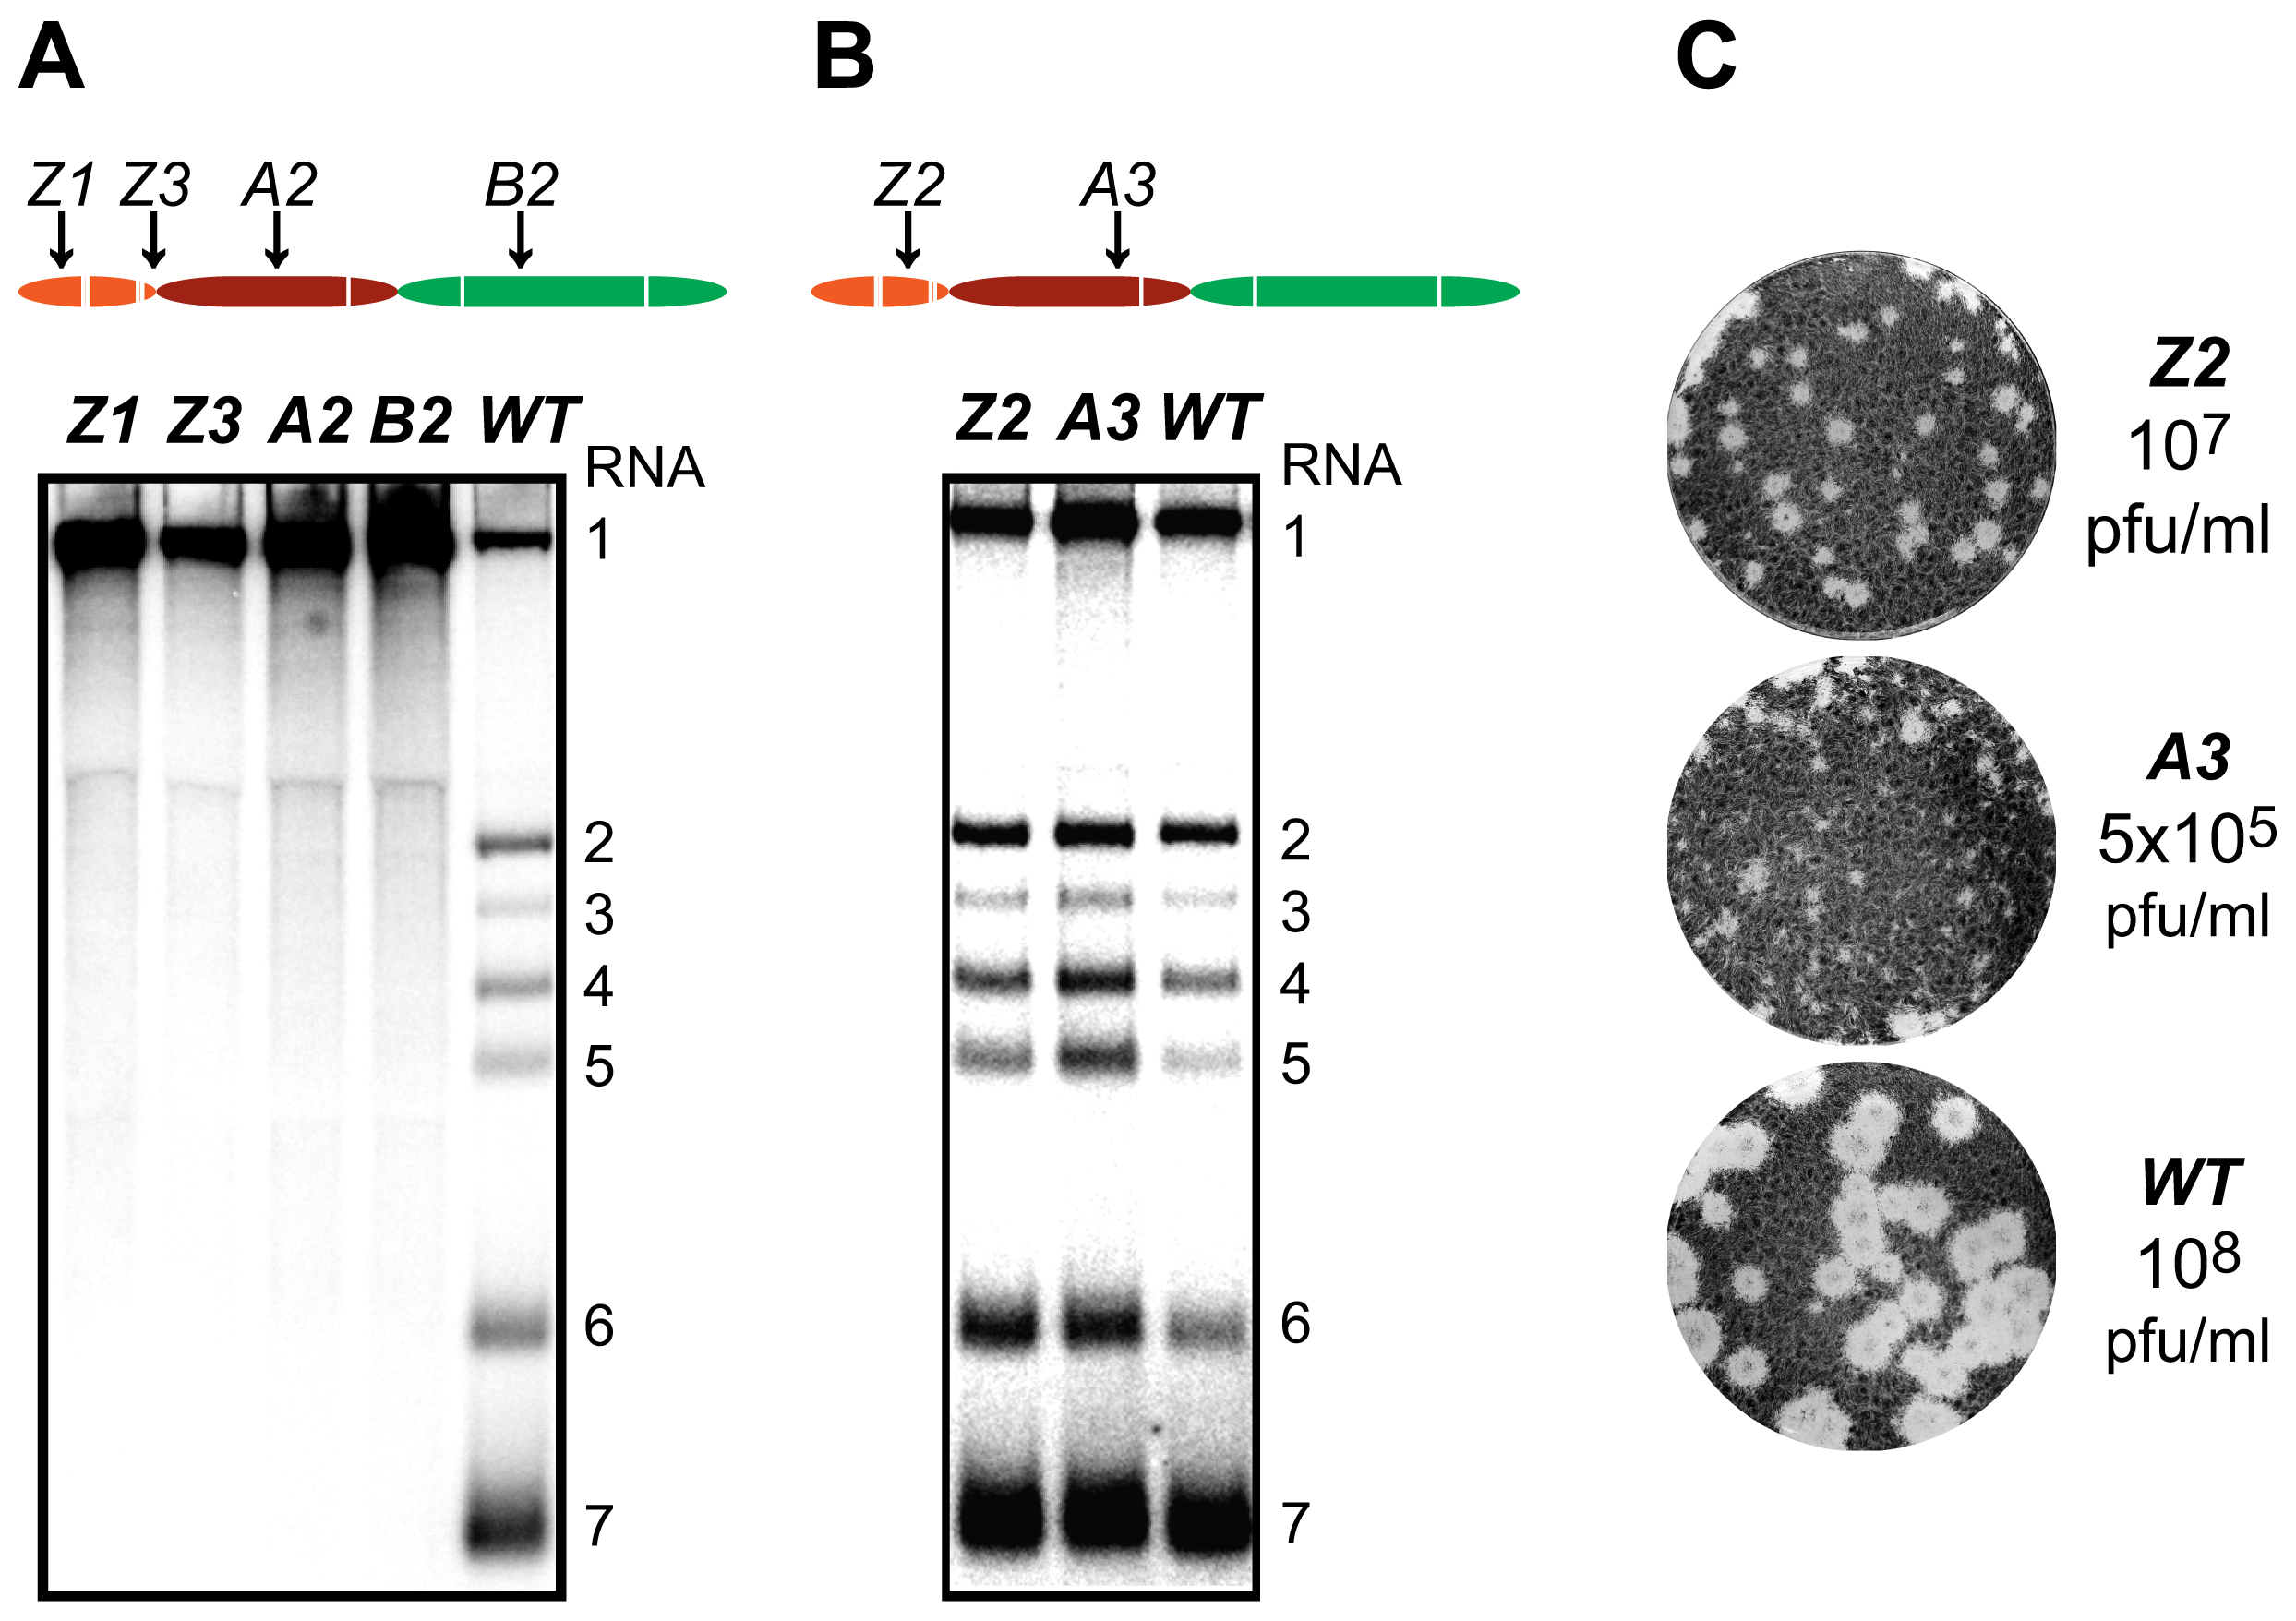 Importance of nsp1 subdomains for transcription and virus production.